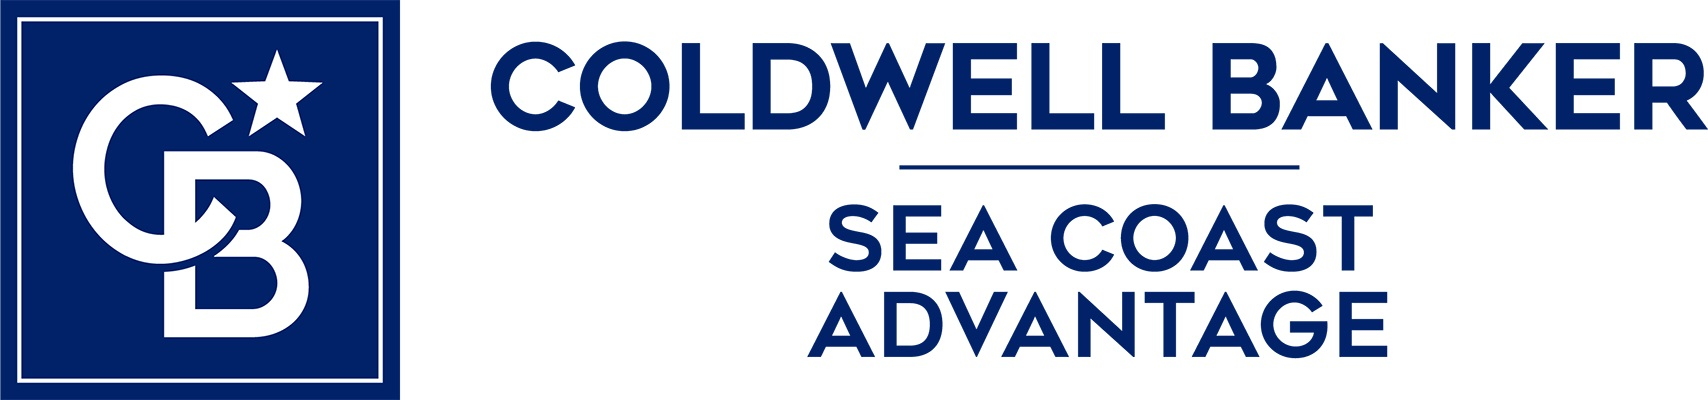 Coldwell Banker Sea Coast Advantage - Barbara Pugh Logo